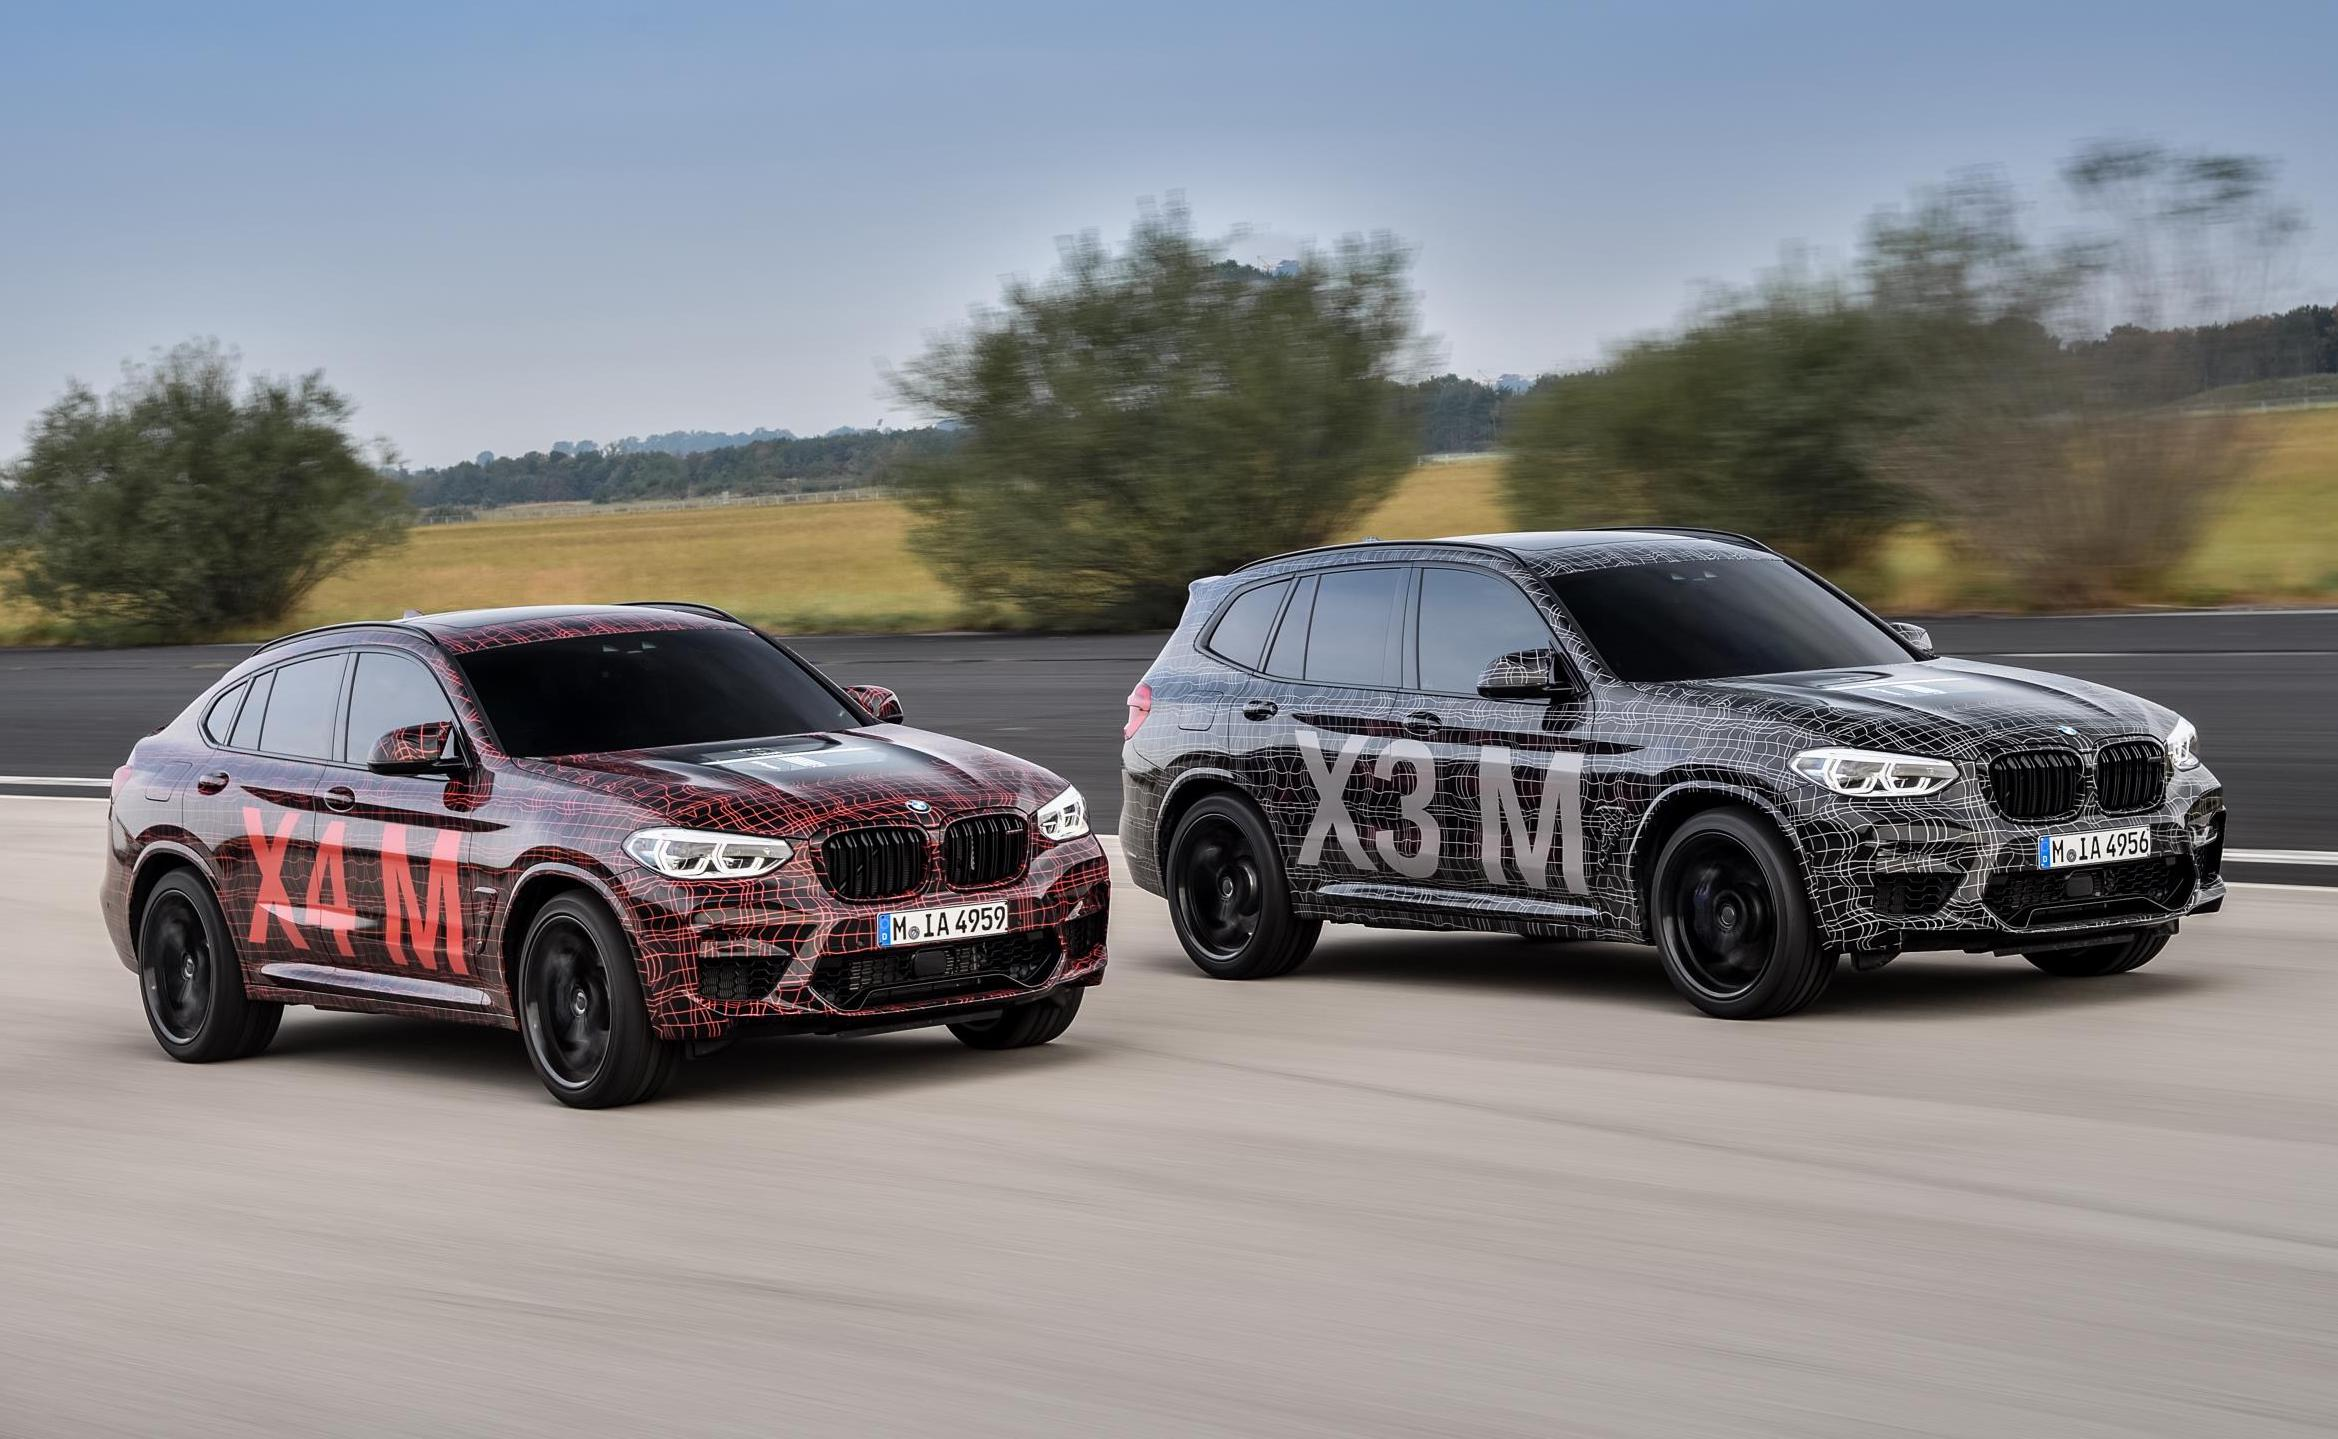 Bmw X3 M Continues Testing Sounds Very M3 Video Performancedrive